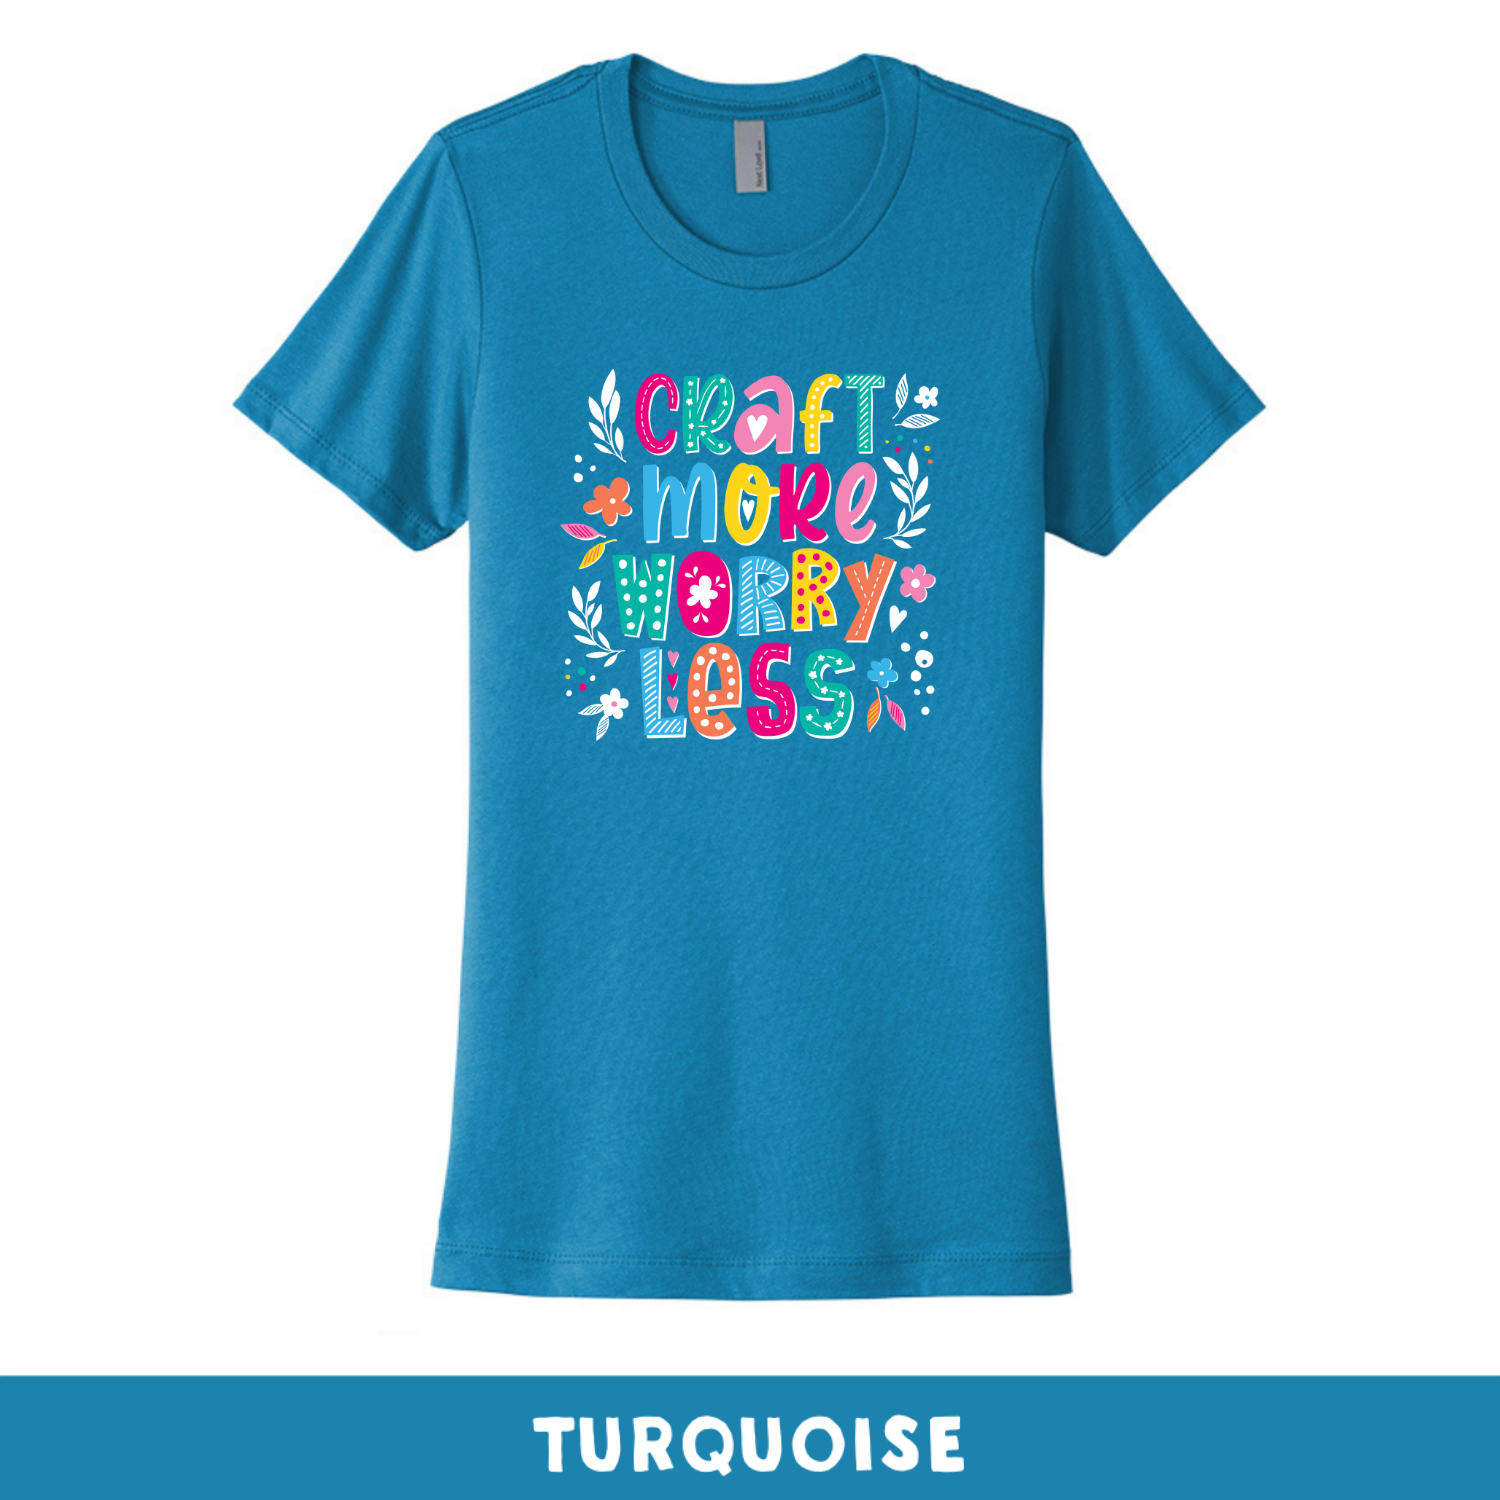 Turquoise - Crew Neck Boyfriend Tee - Craft More Worry Less